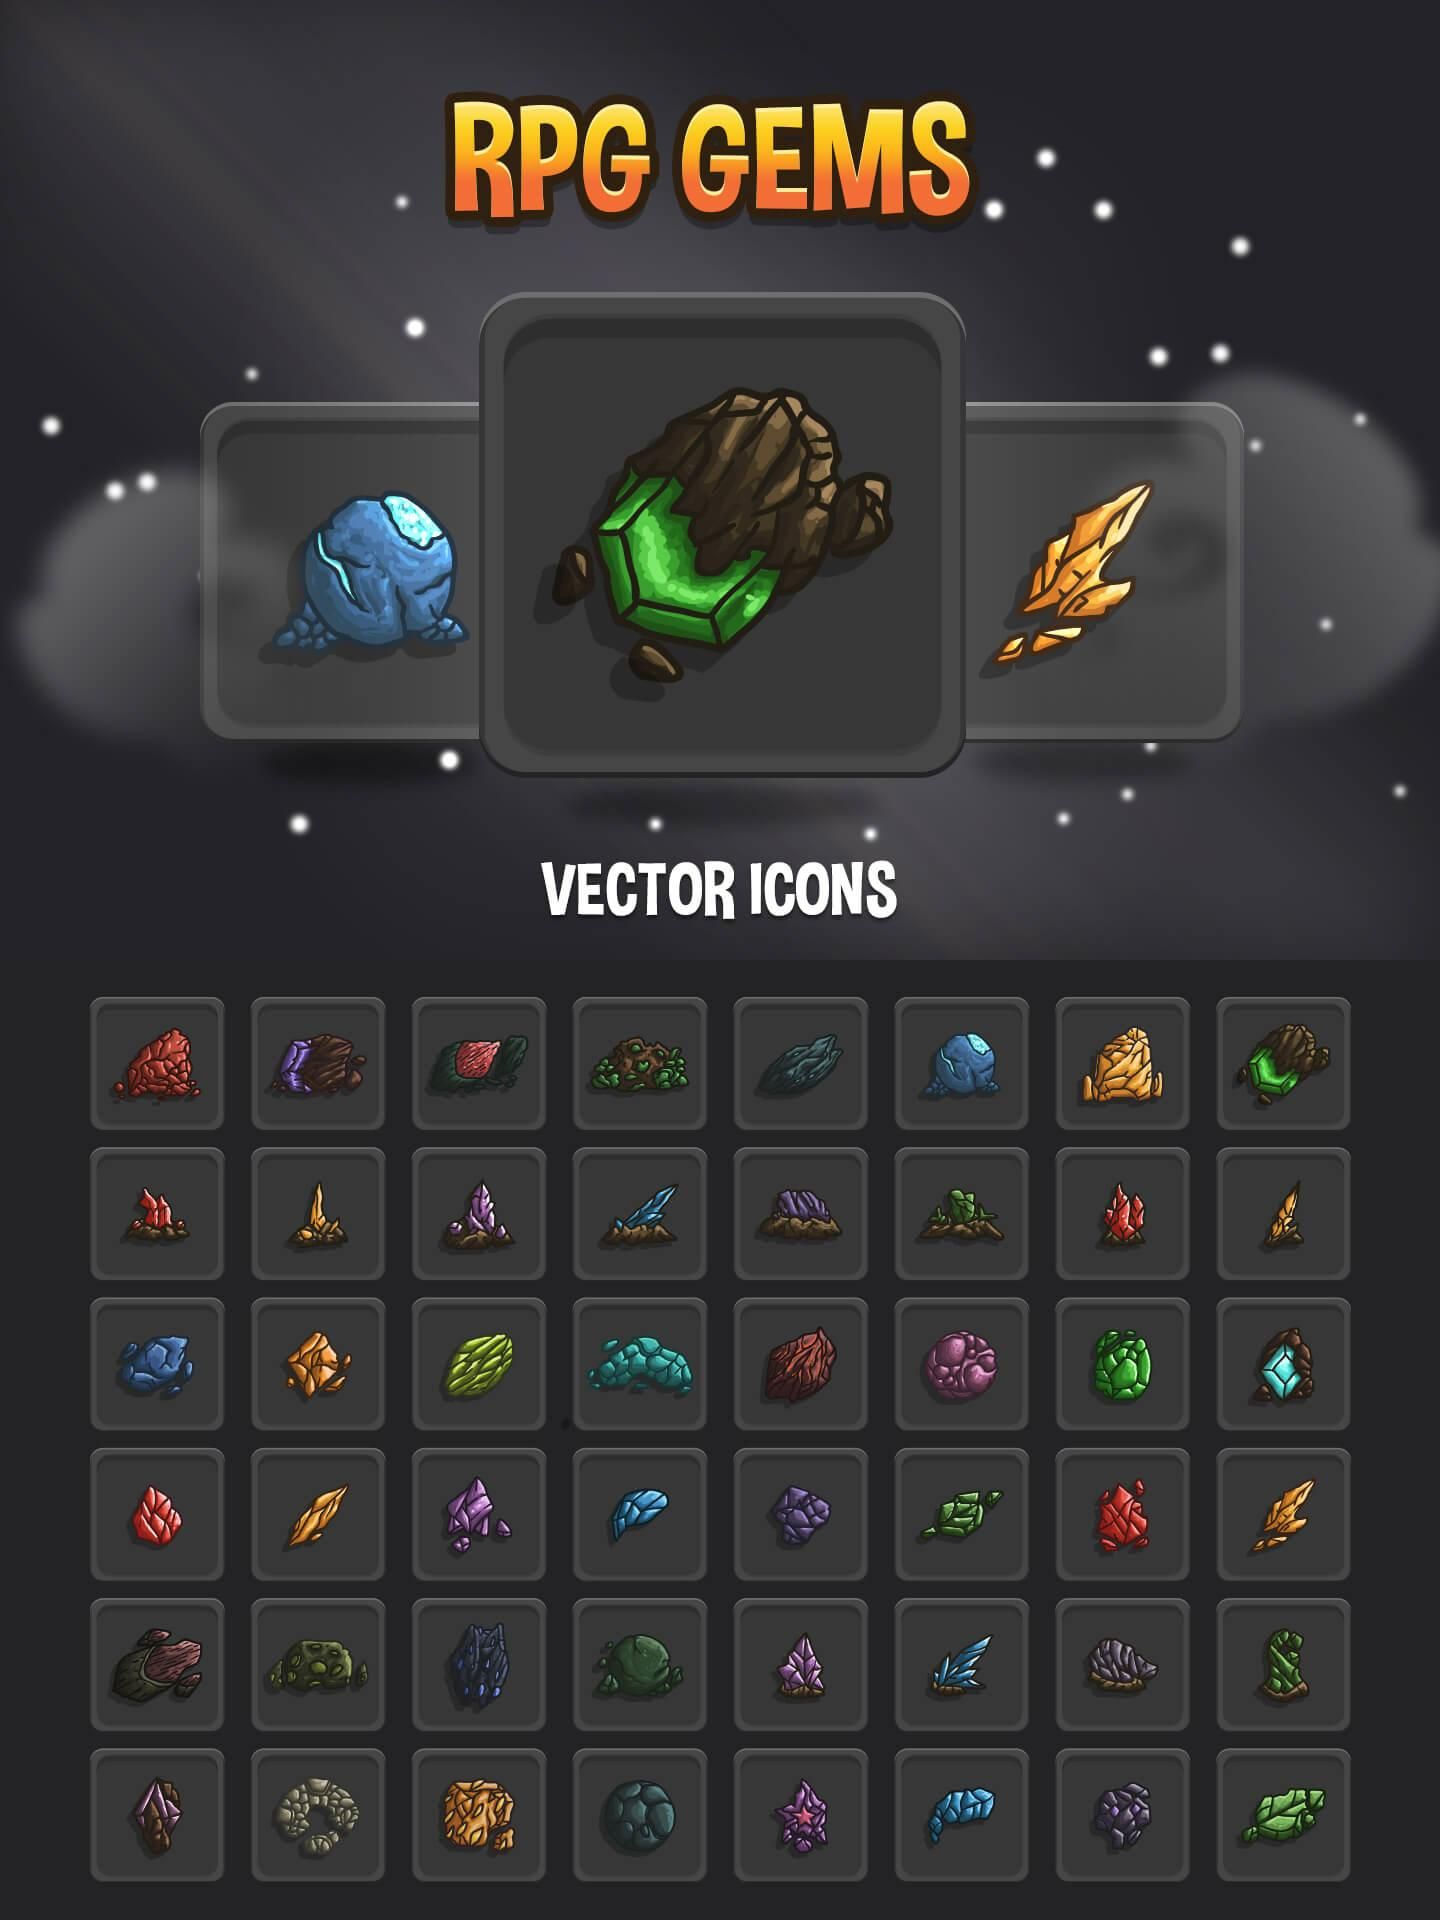 RPG Gems Vector Icons in 2020 Vector